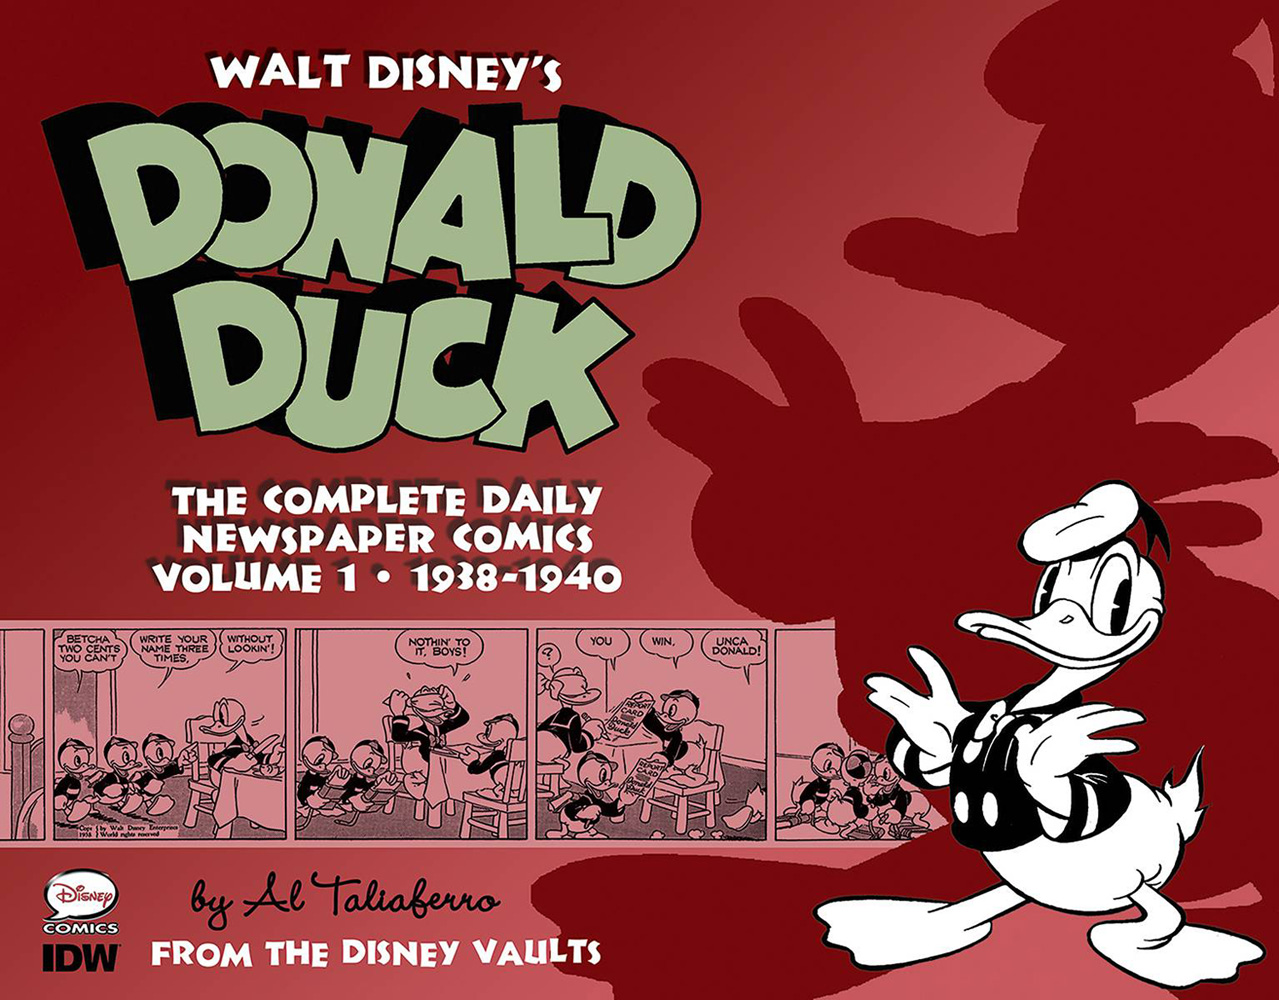 Walt Disney's Donald Duck: The Complete Daily Newspaper Comics Vol. 1